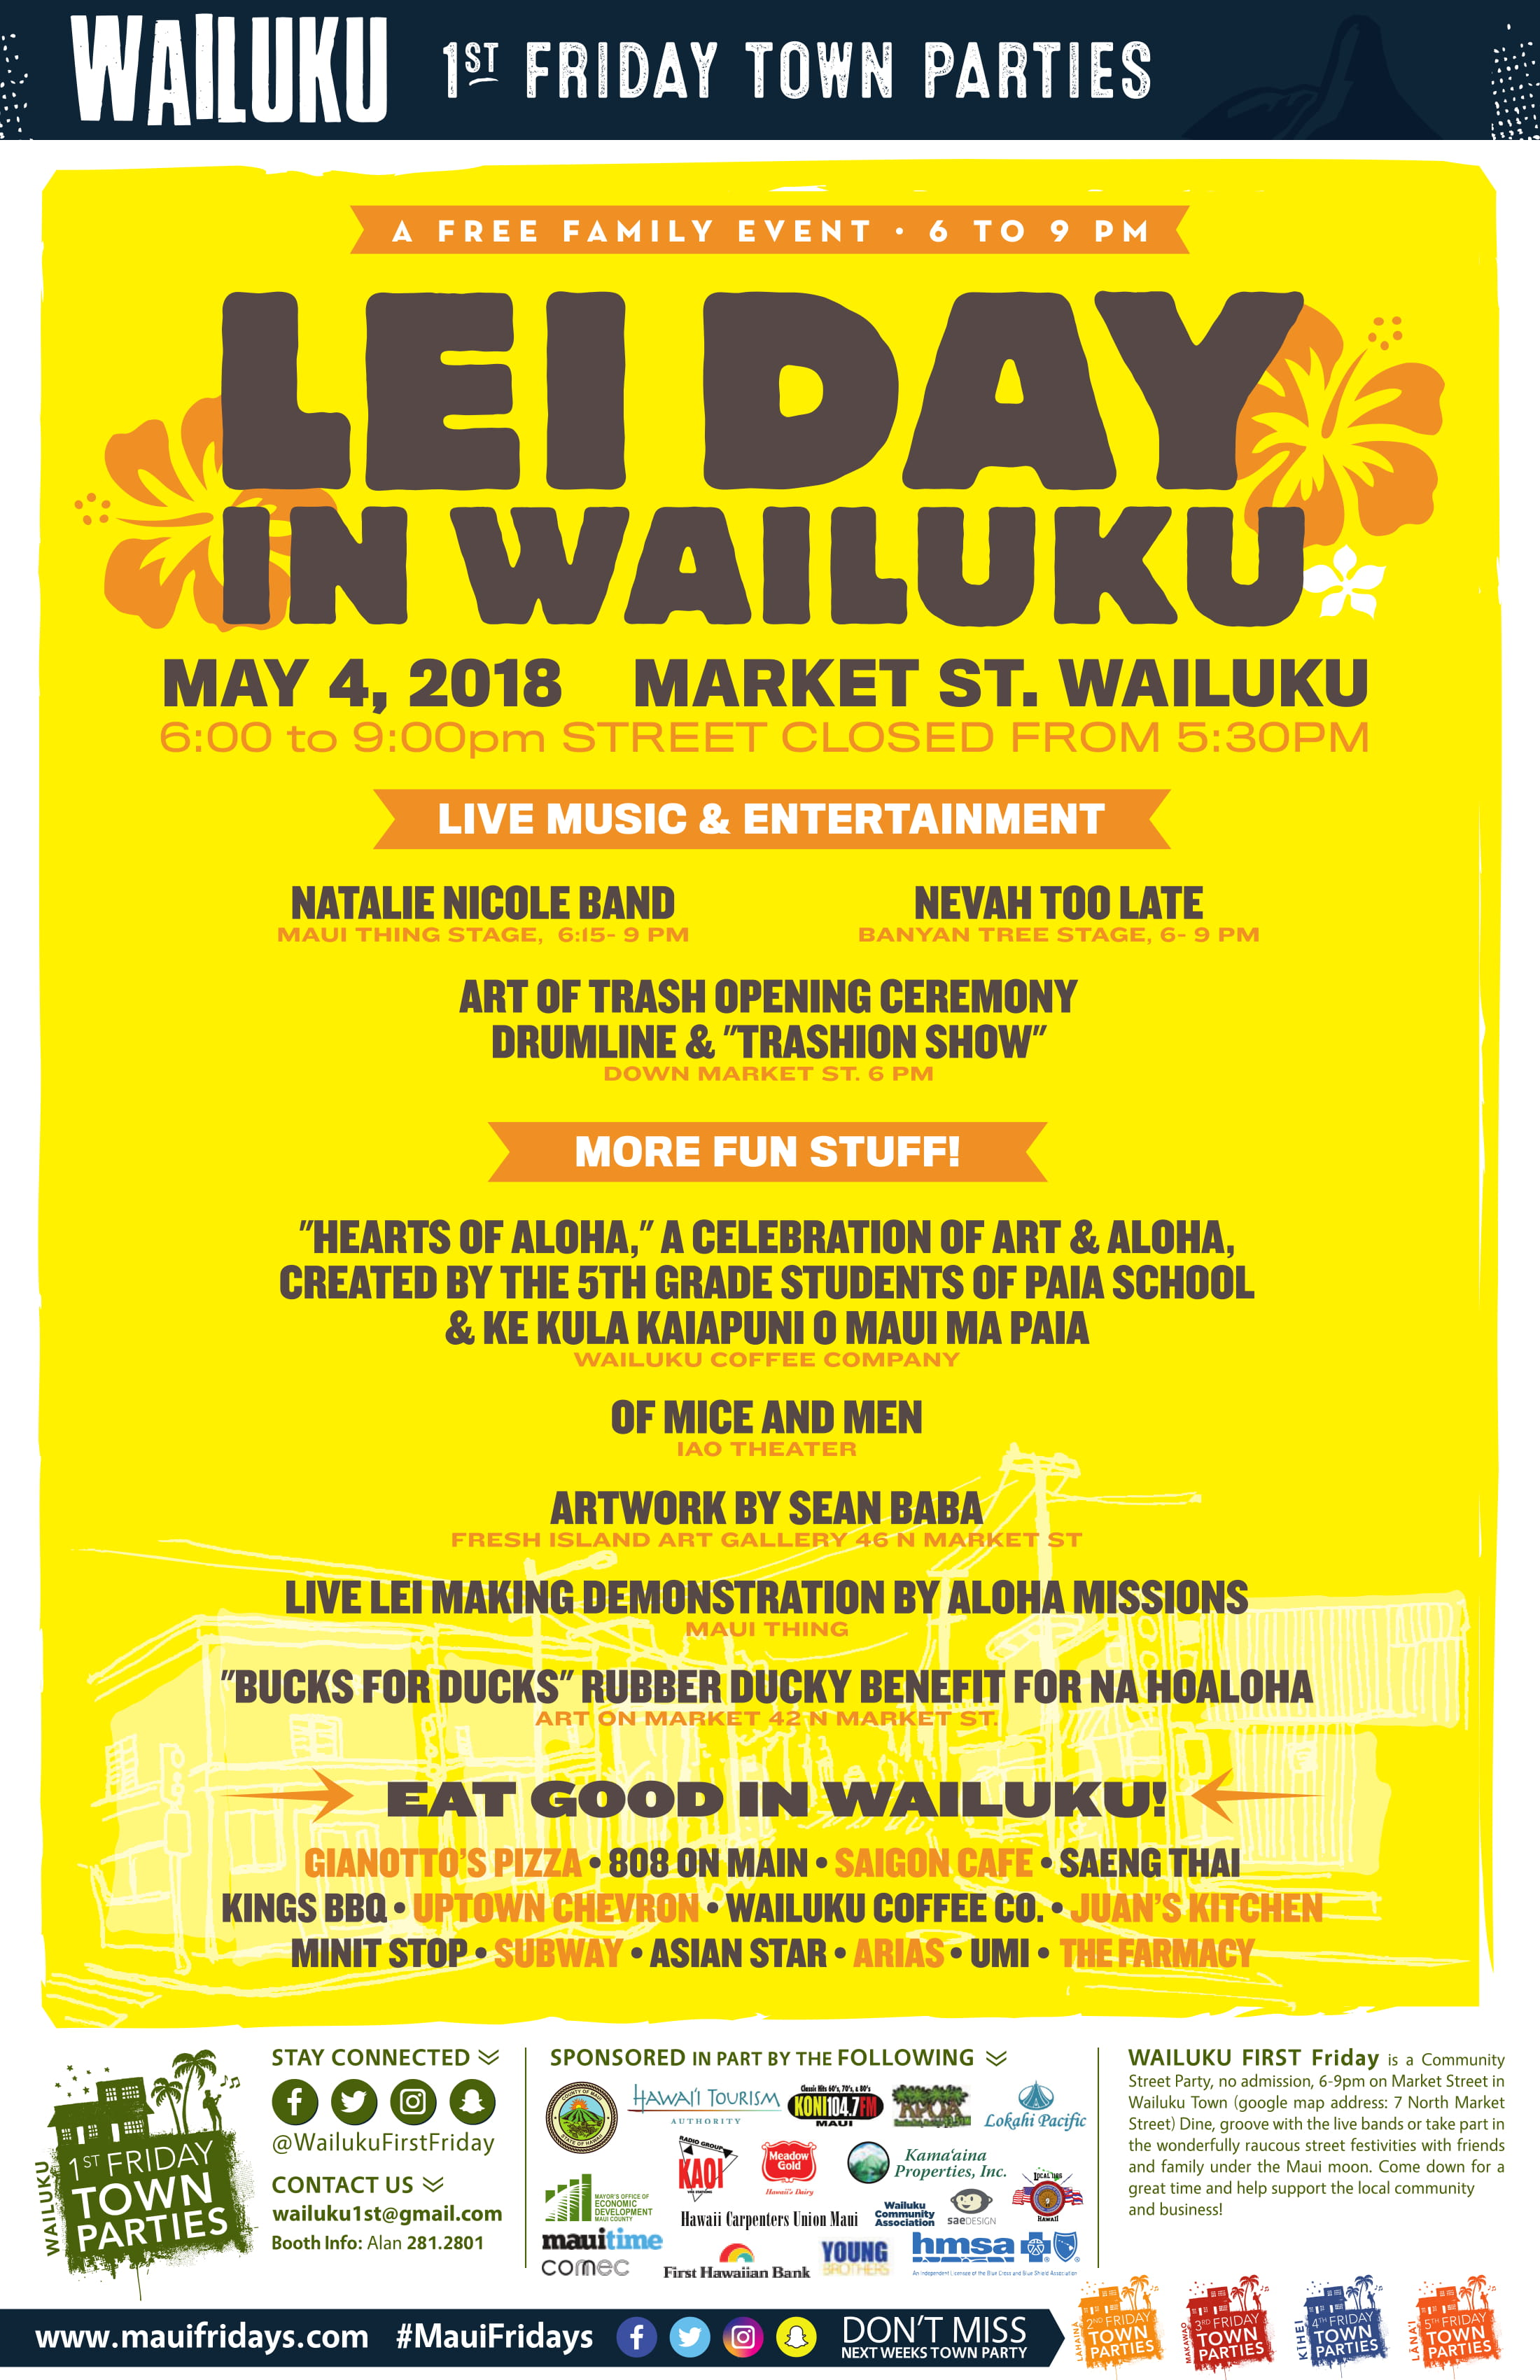 Wailuku First Friday Lineup Announced